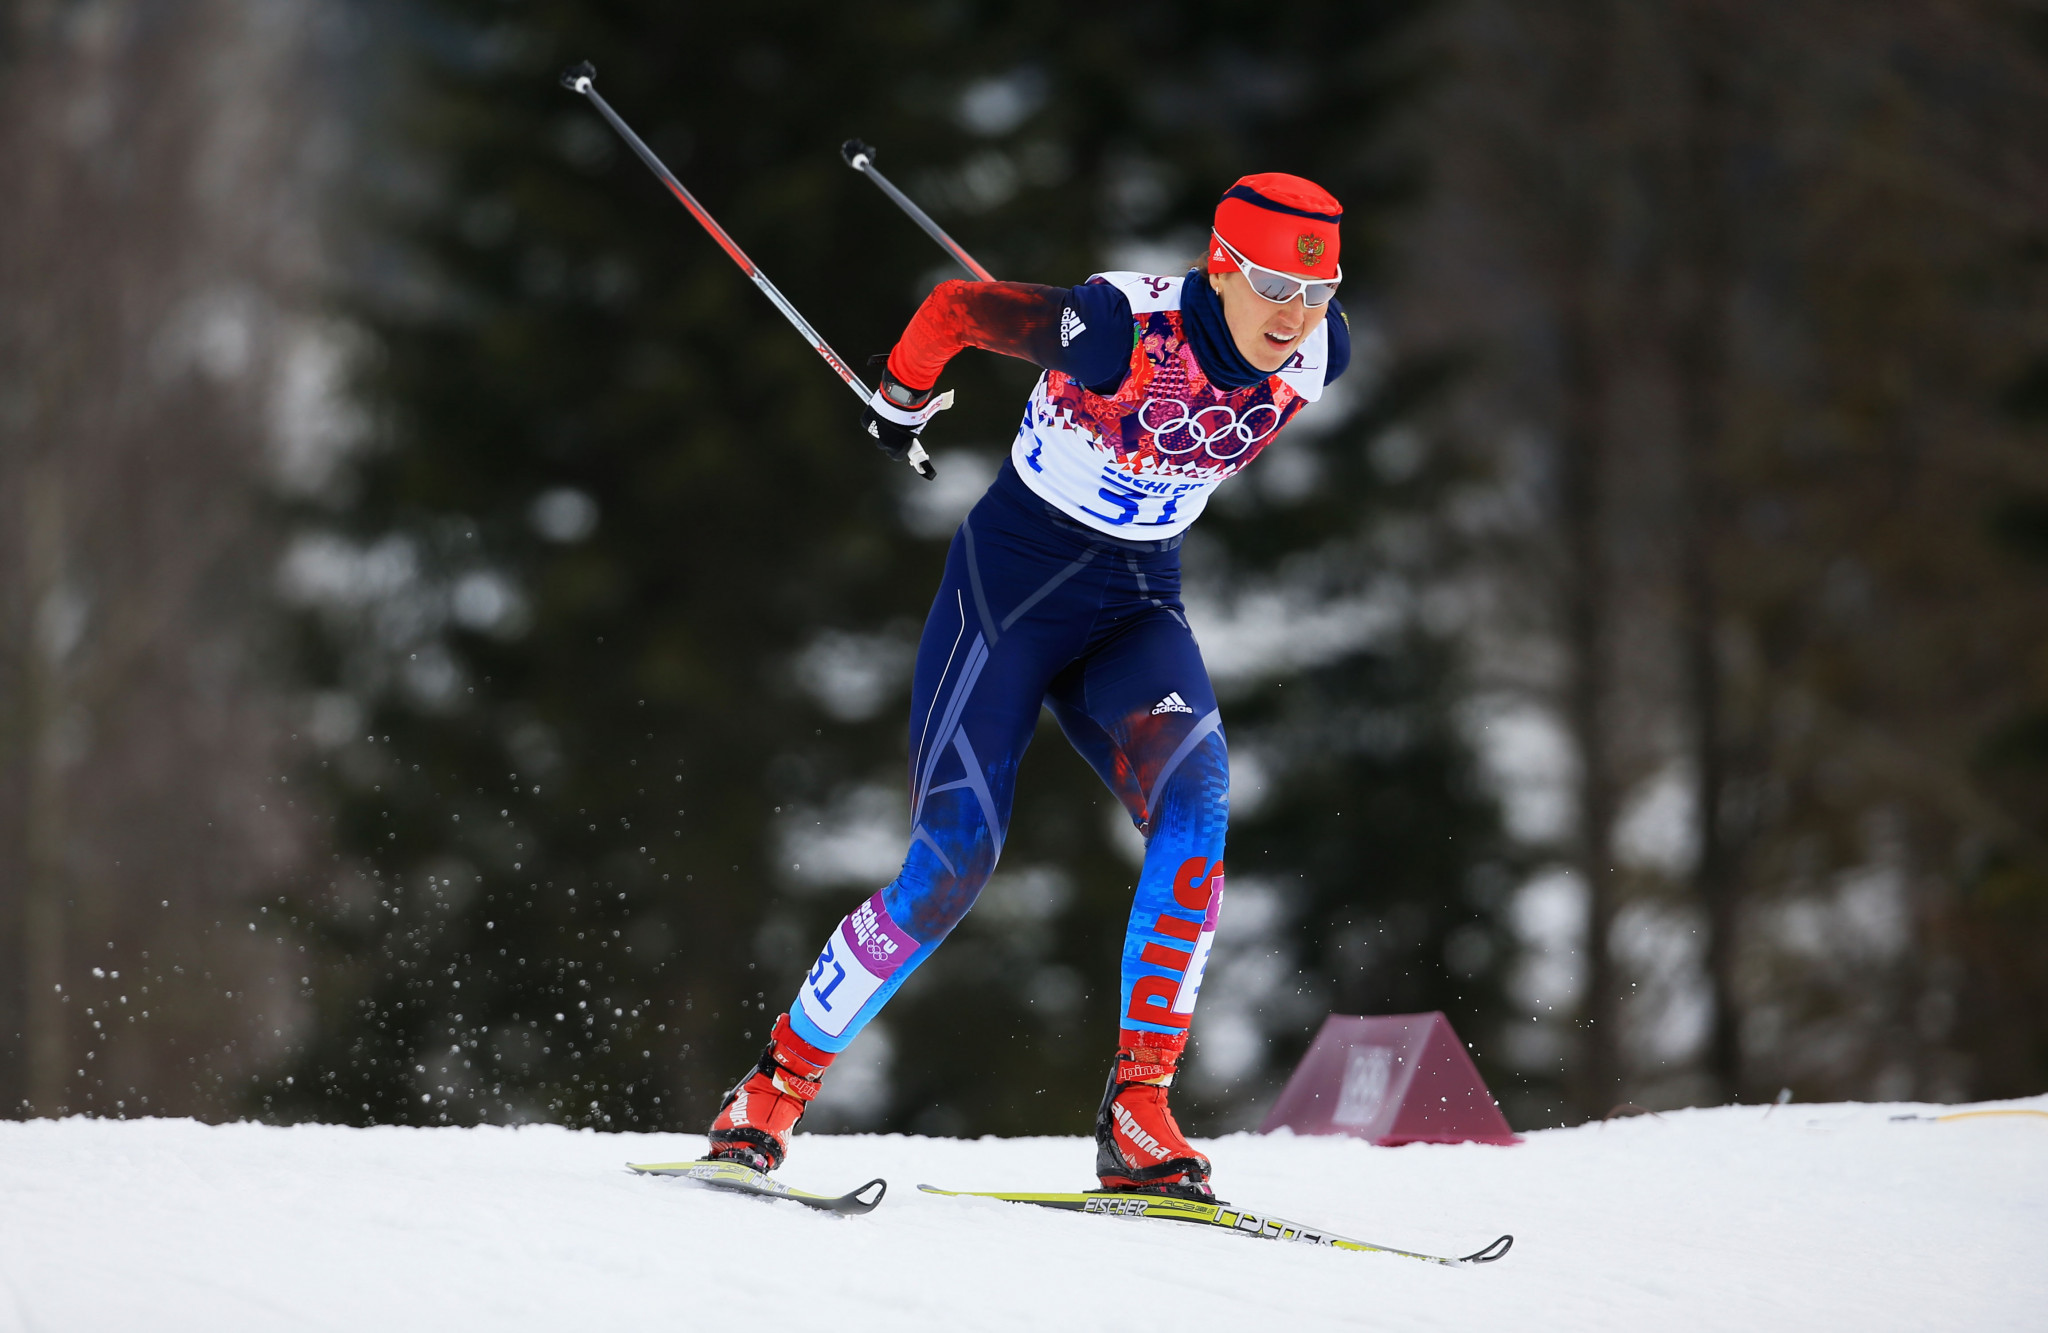 Anastasia Dotsenko has also appealed after she was banned for life from the Olympics and disqualified from Sochi 2014 ©Getty Images